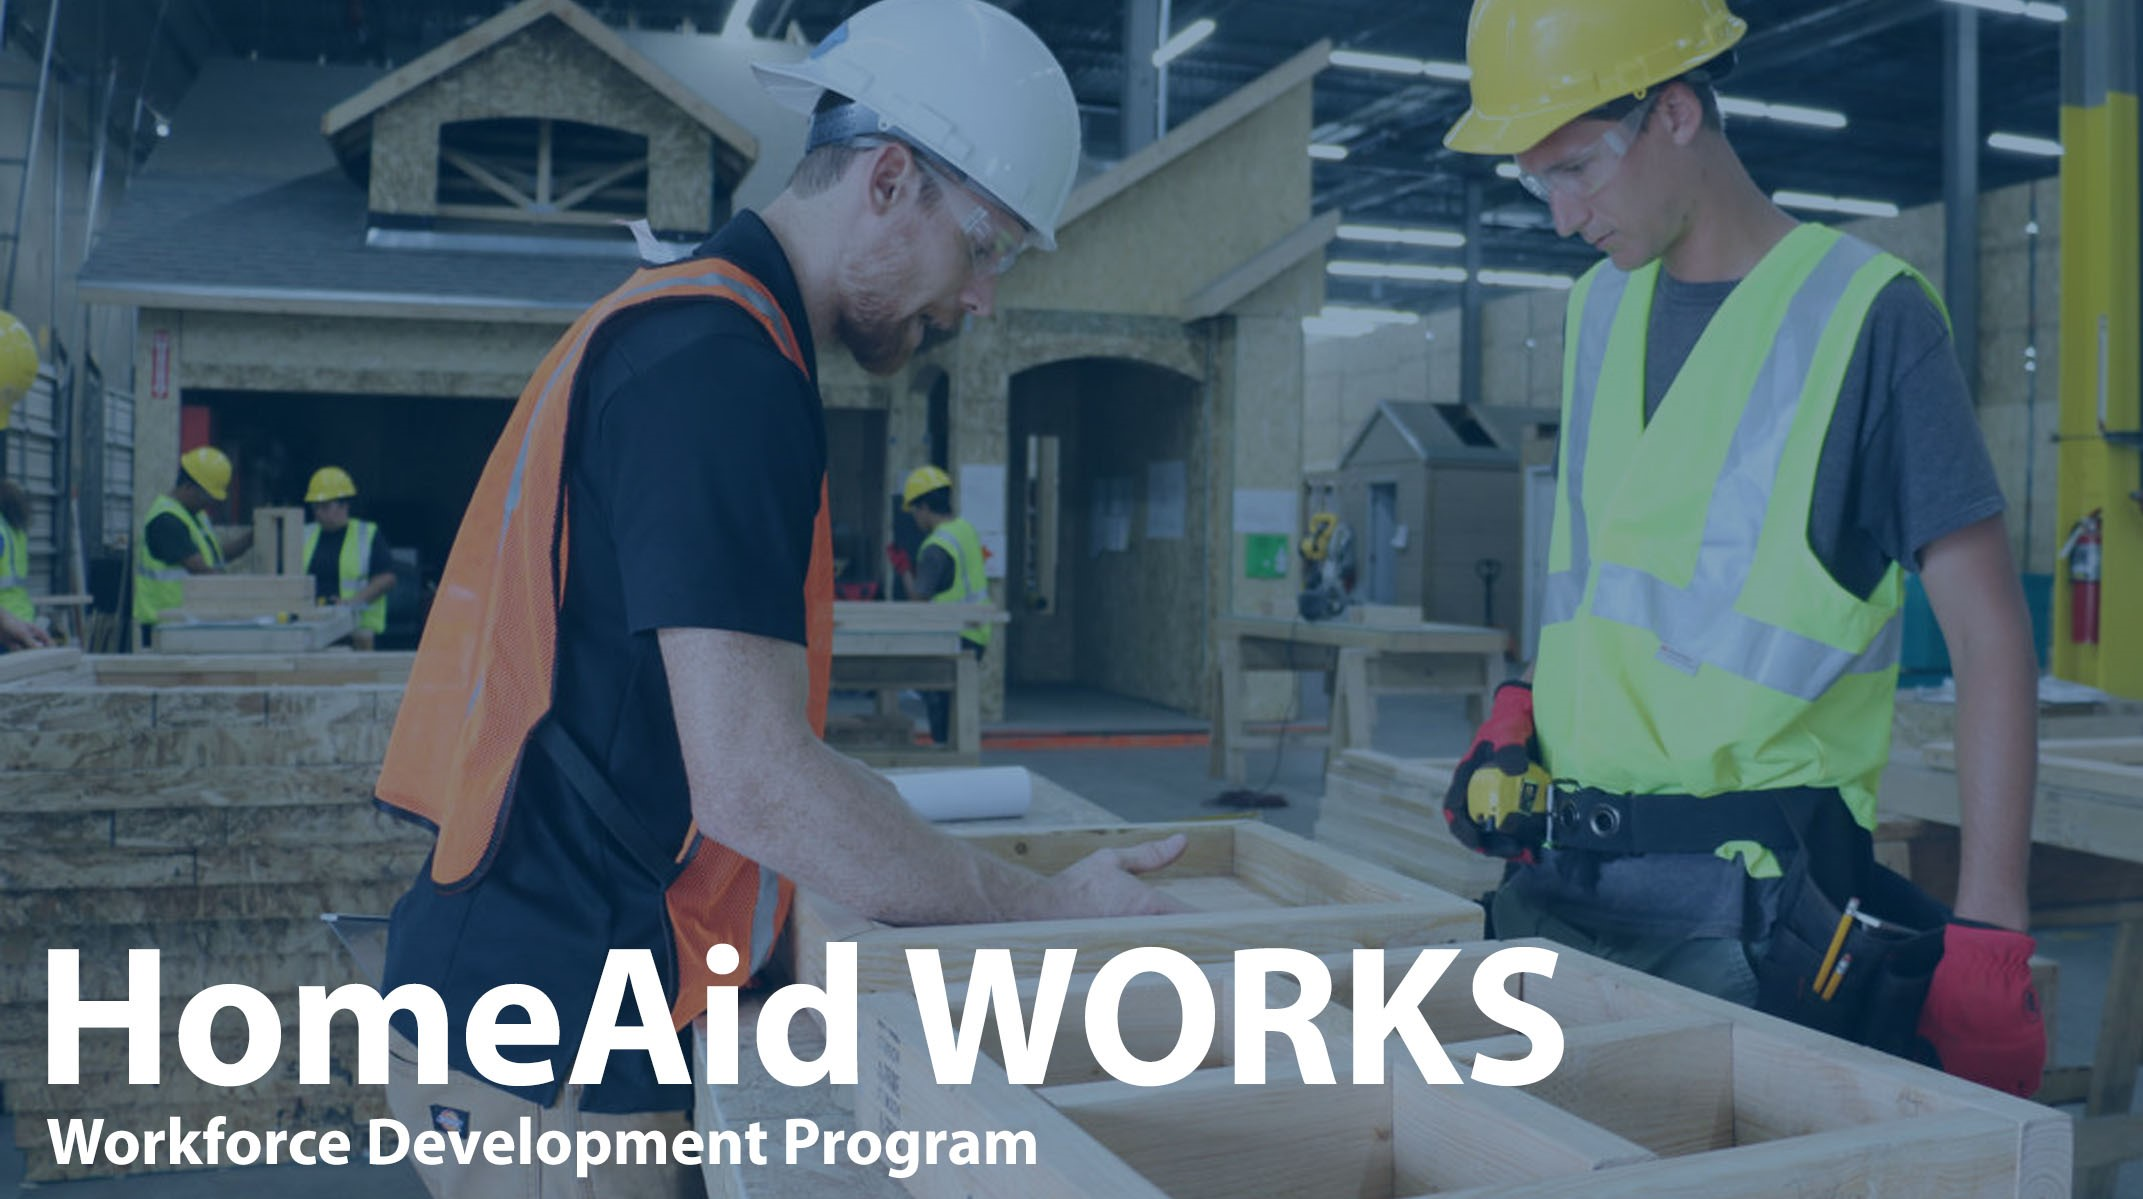 HomeAid America Launches WORKS Program Giving Job Opportunities for Homeless